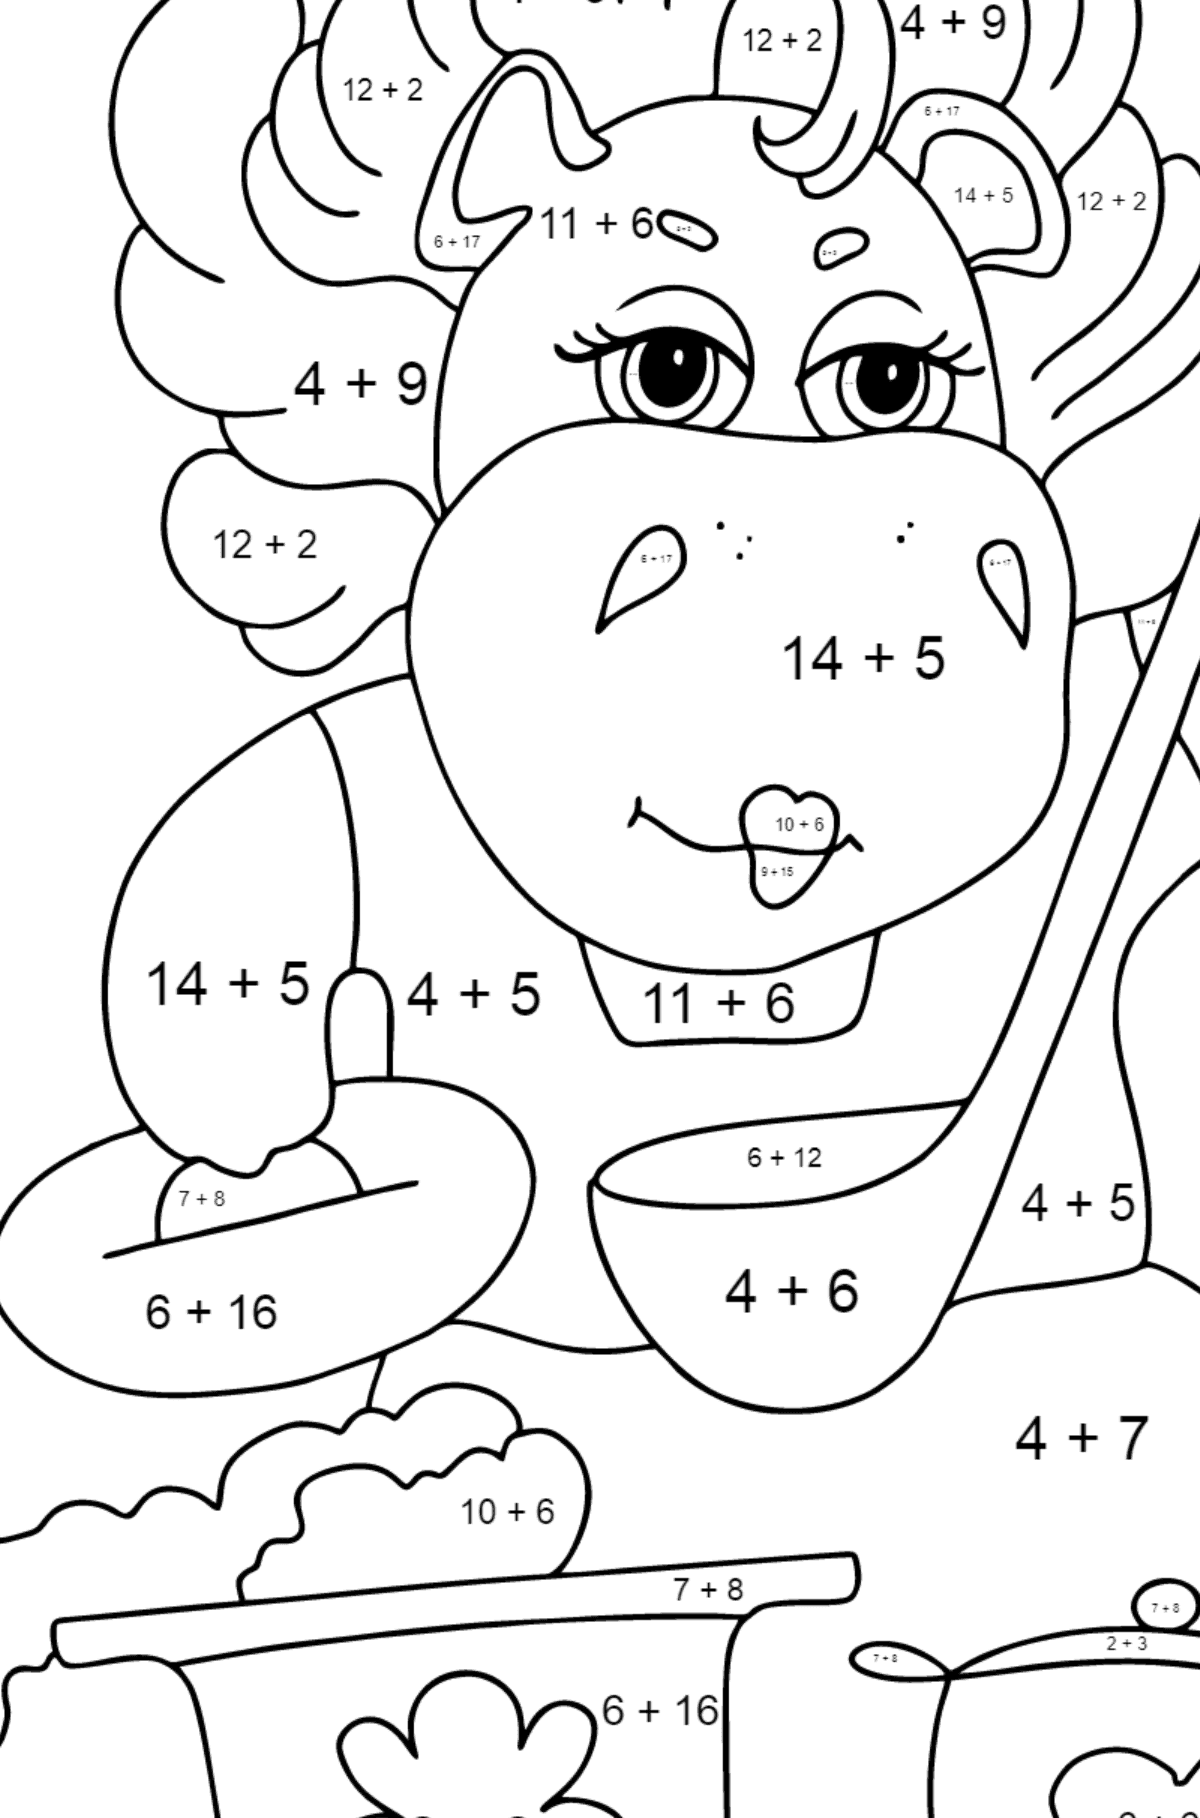 Coloring Page - A Hippo is Cooking a Tasty Lunch for Kids  - Color by Number Addition